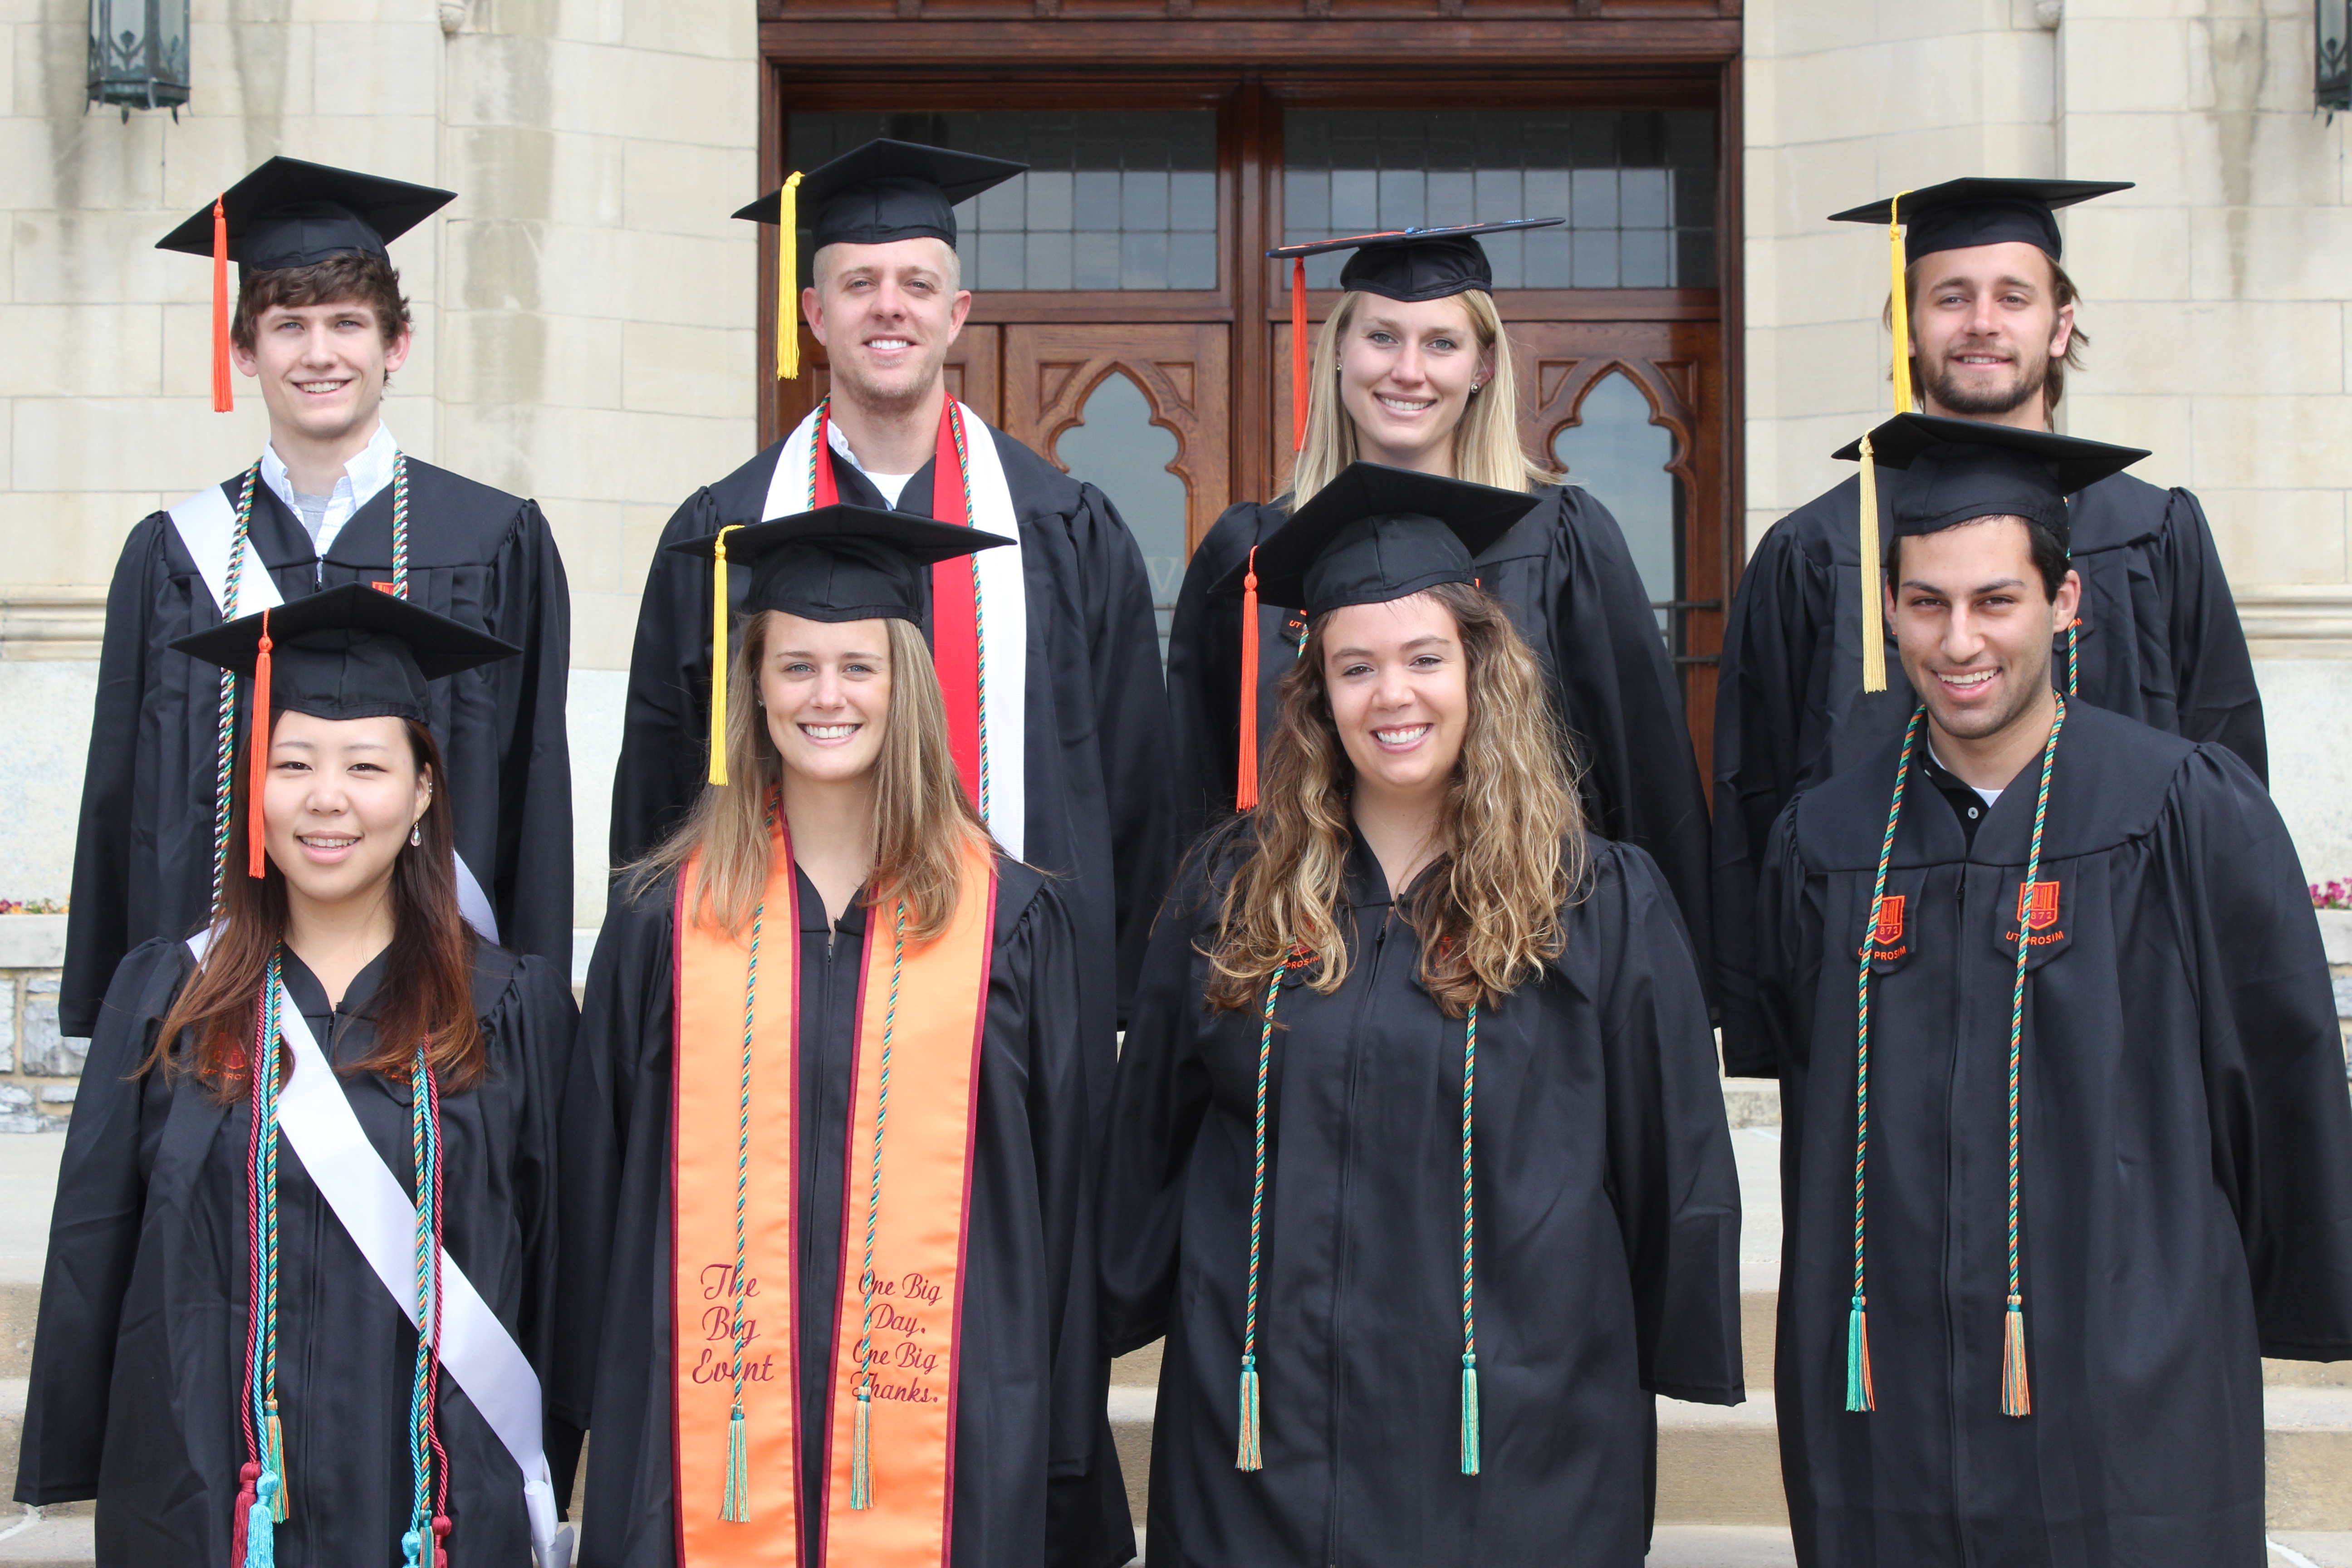 The first cohort of graduates from the Scieneering program